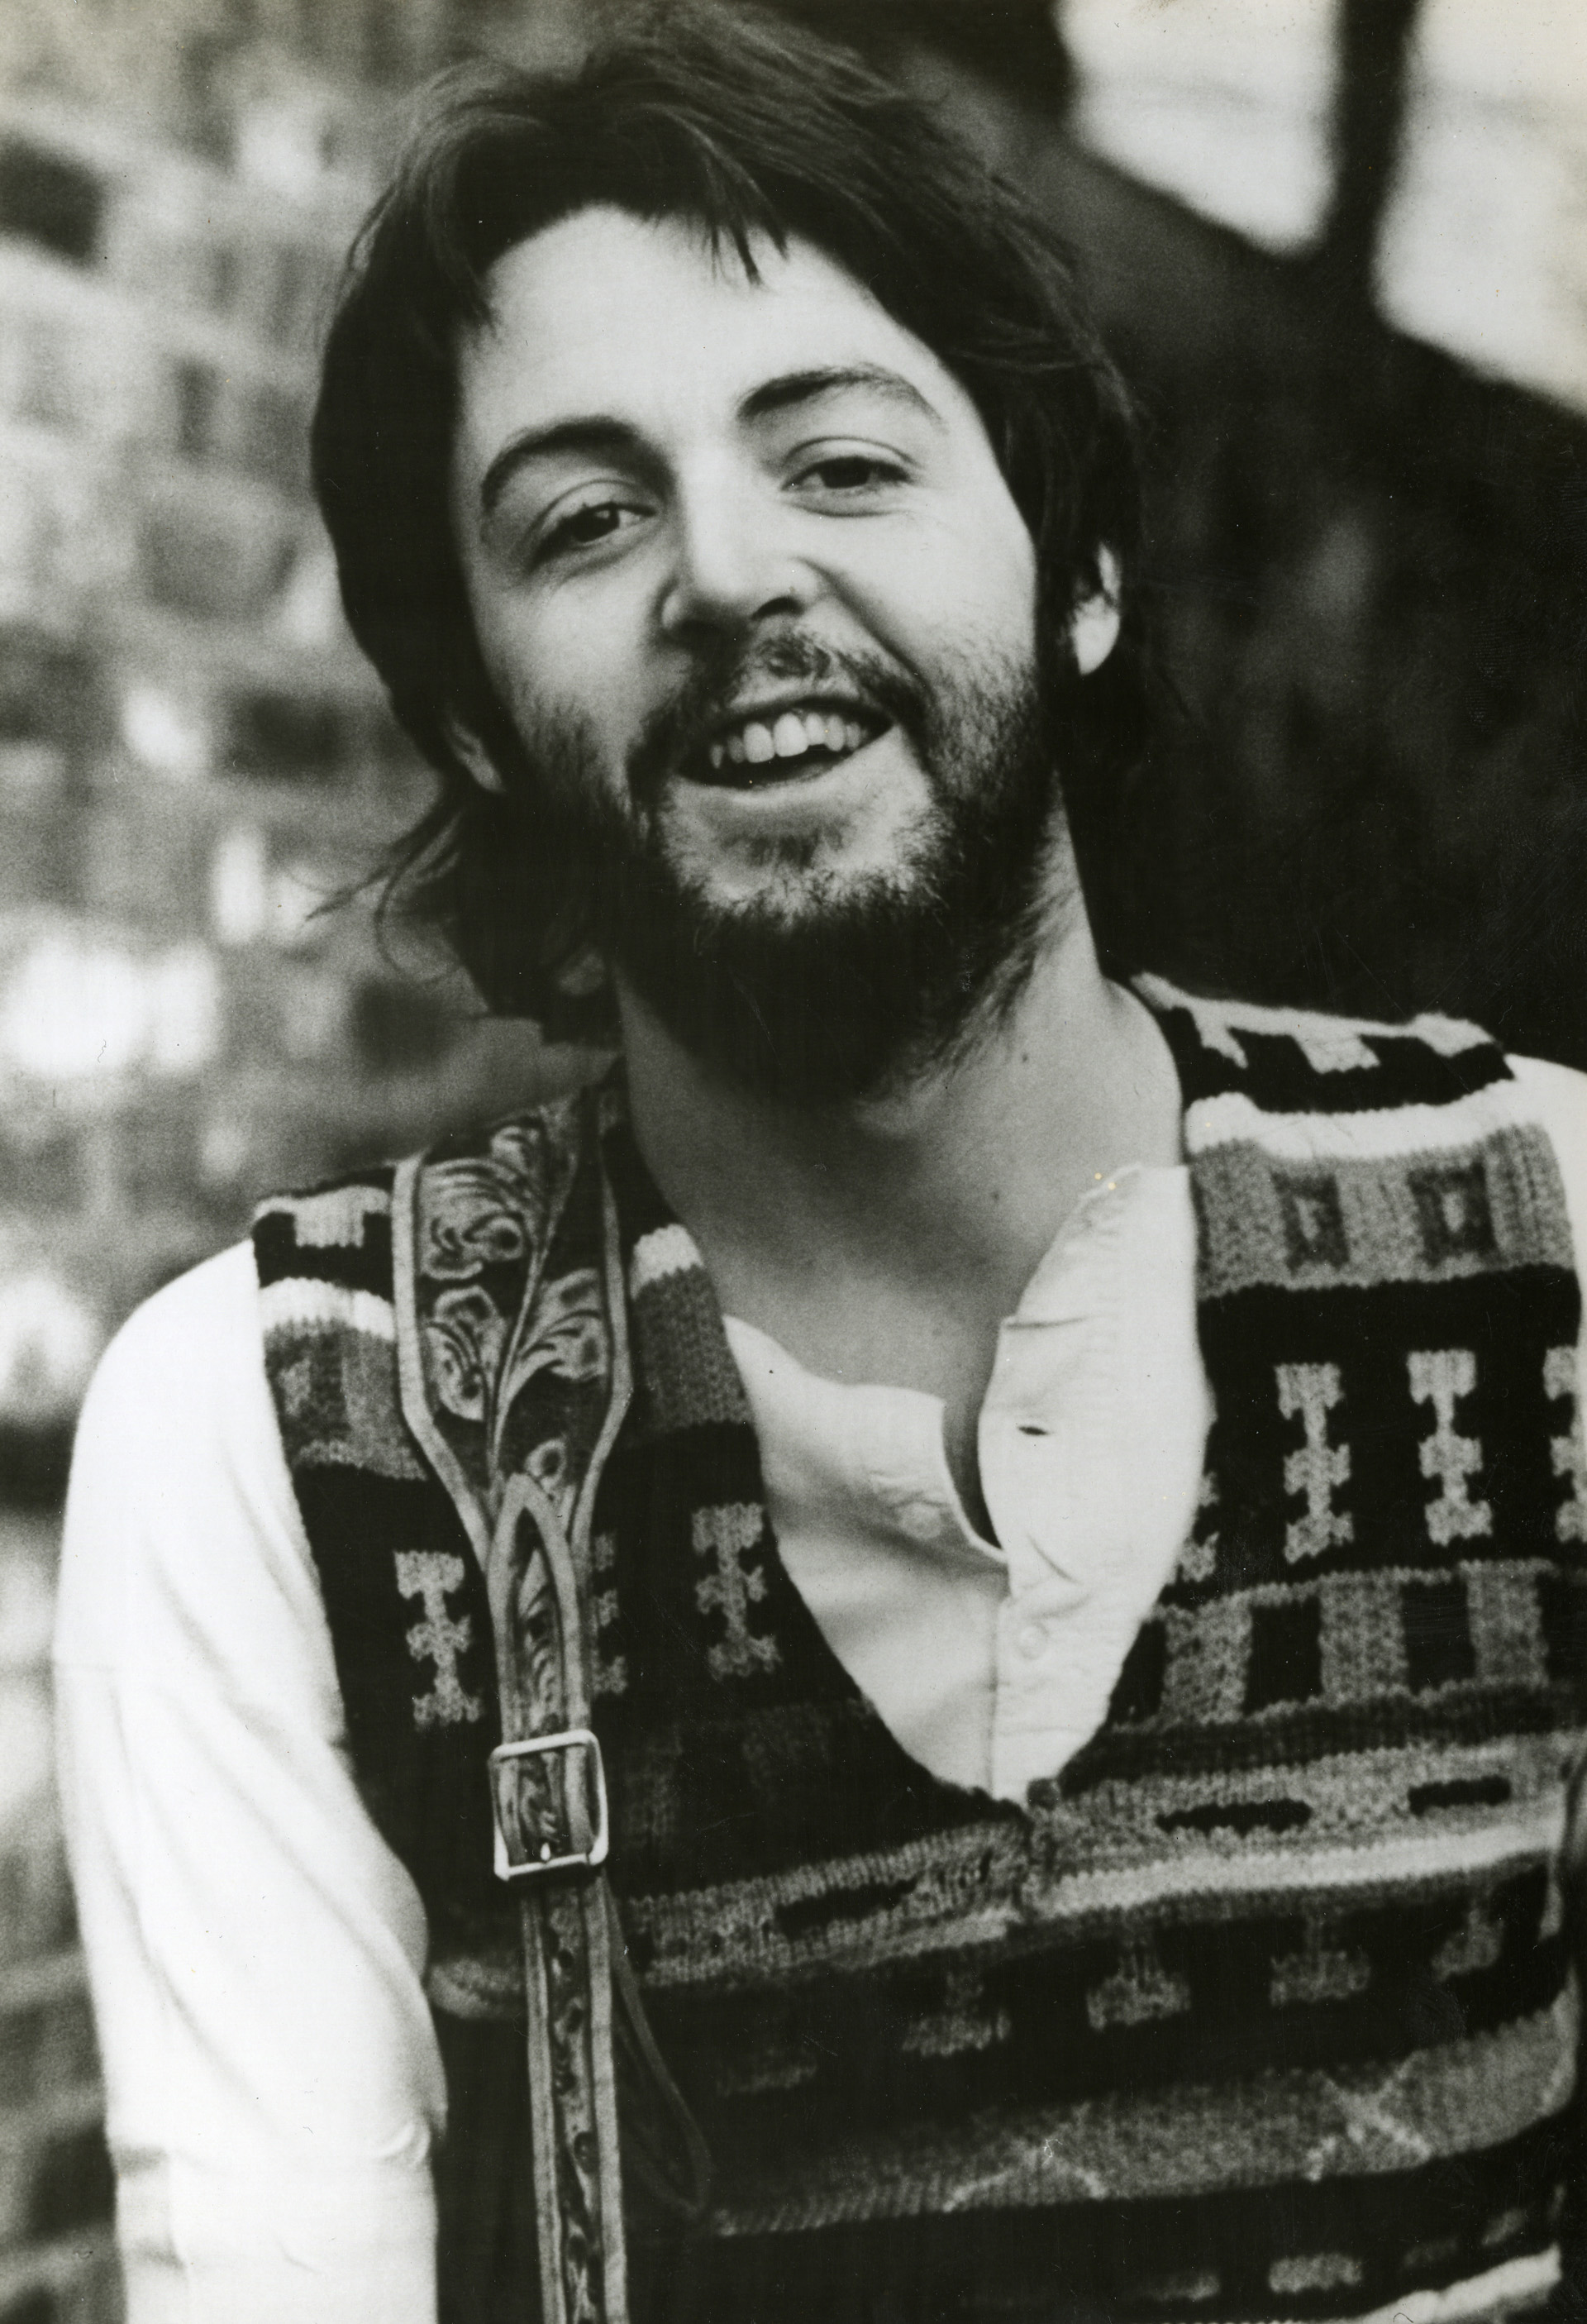 1969_paul_mccartney_credit_linda_mccartney.jpg